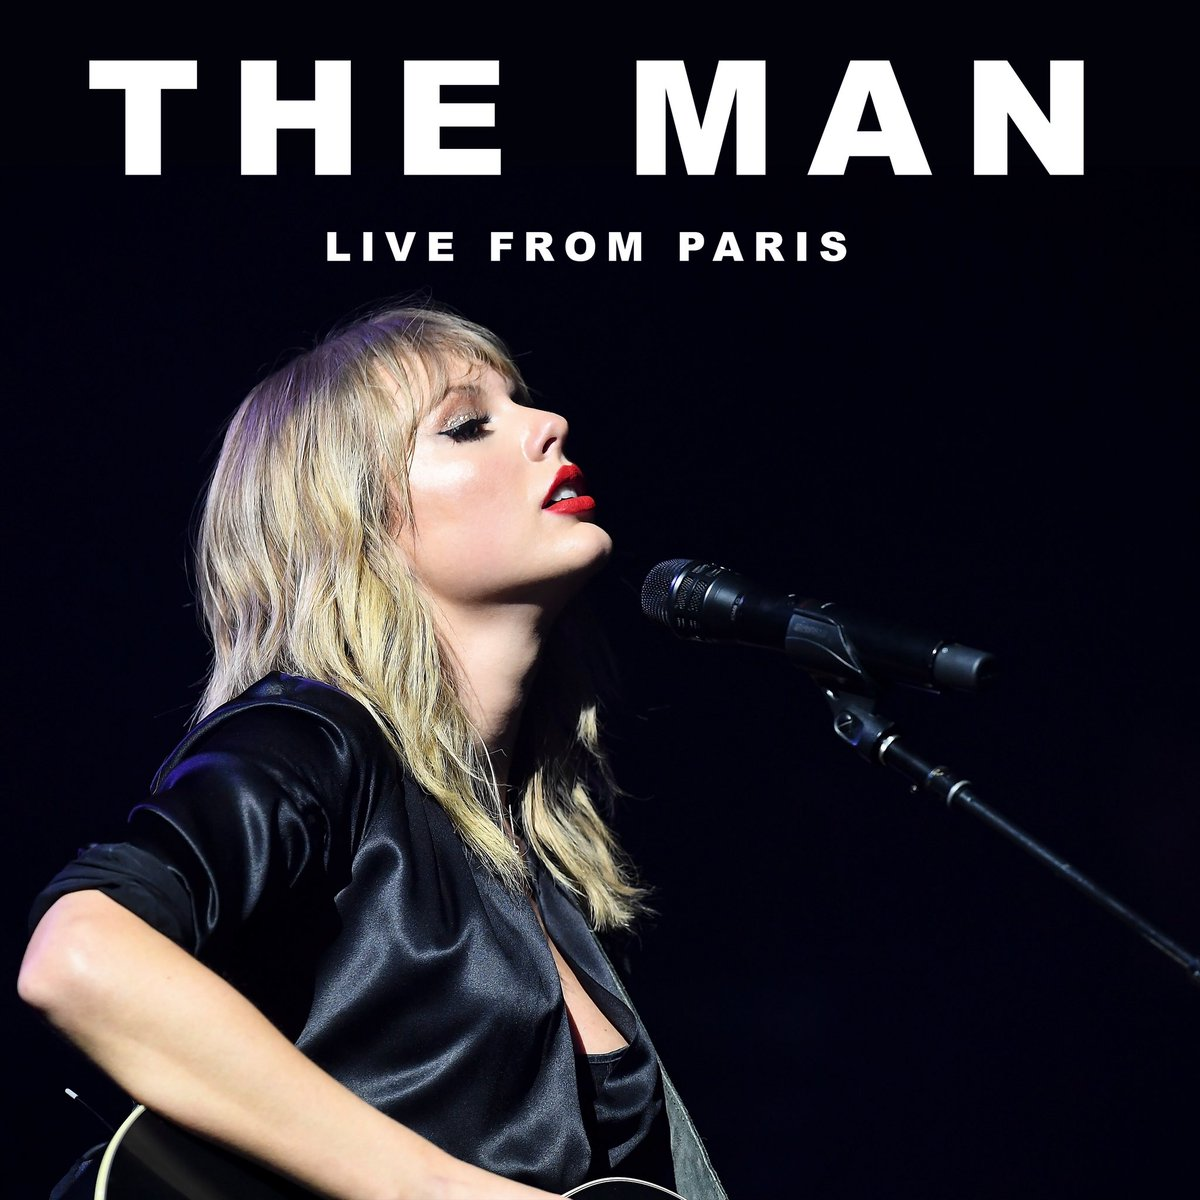 The Man - Live From Paris  ✨  Song/video tonight at Midnight ET https://t.co/Mr579hZtZe